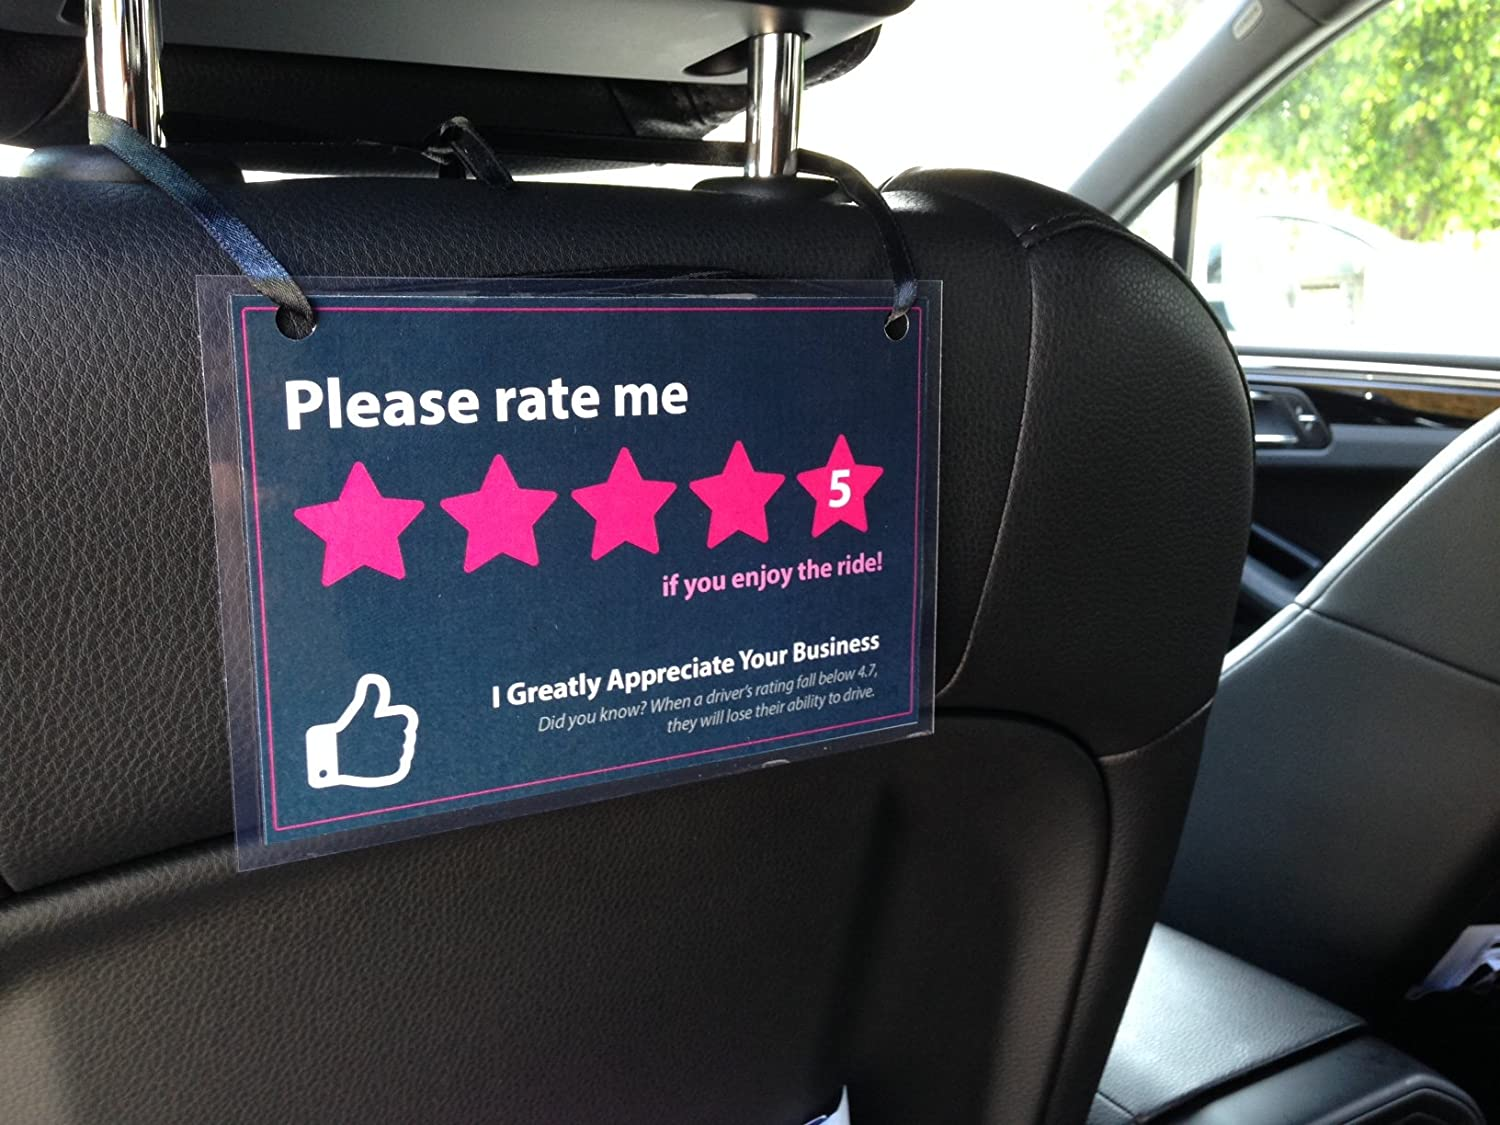 Amazon set of 3 uber lyft headrest 5 star ratings decal amazon set of 3 uber lyft headrest 5 star ratings decal sign rideshare car display cards automotive magicingreecefo Image collections